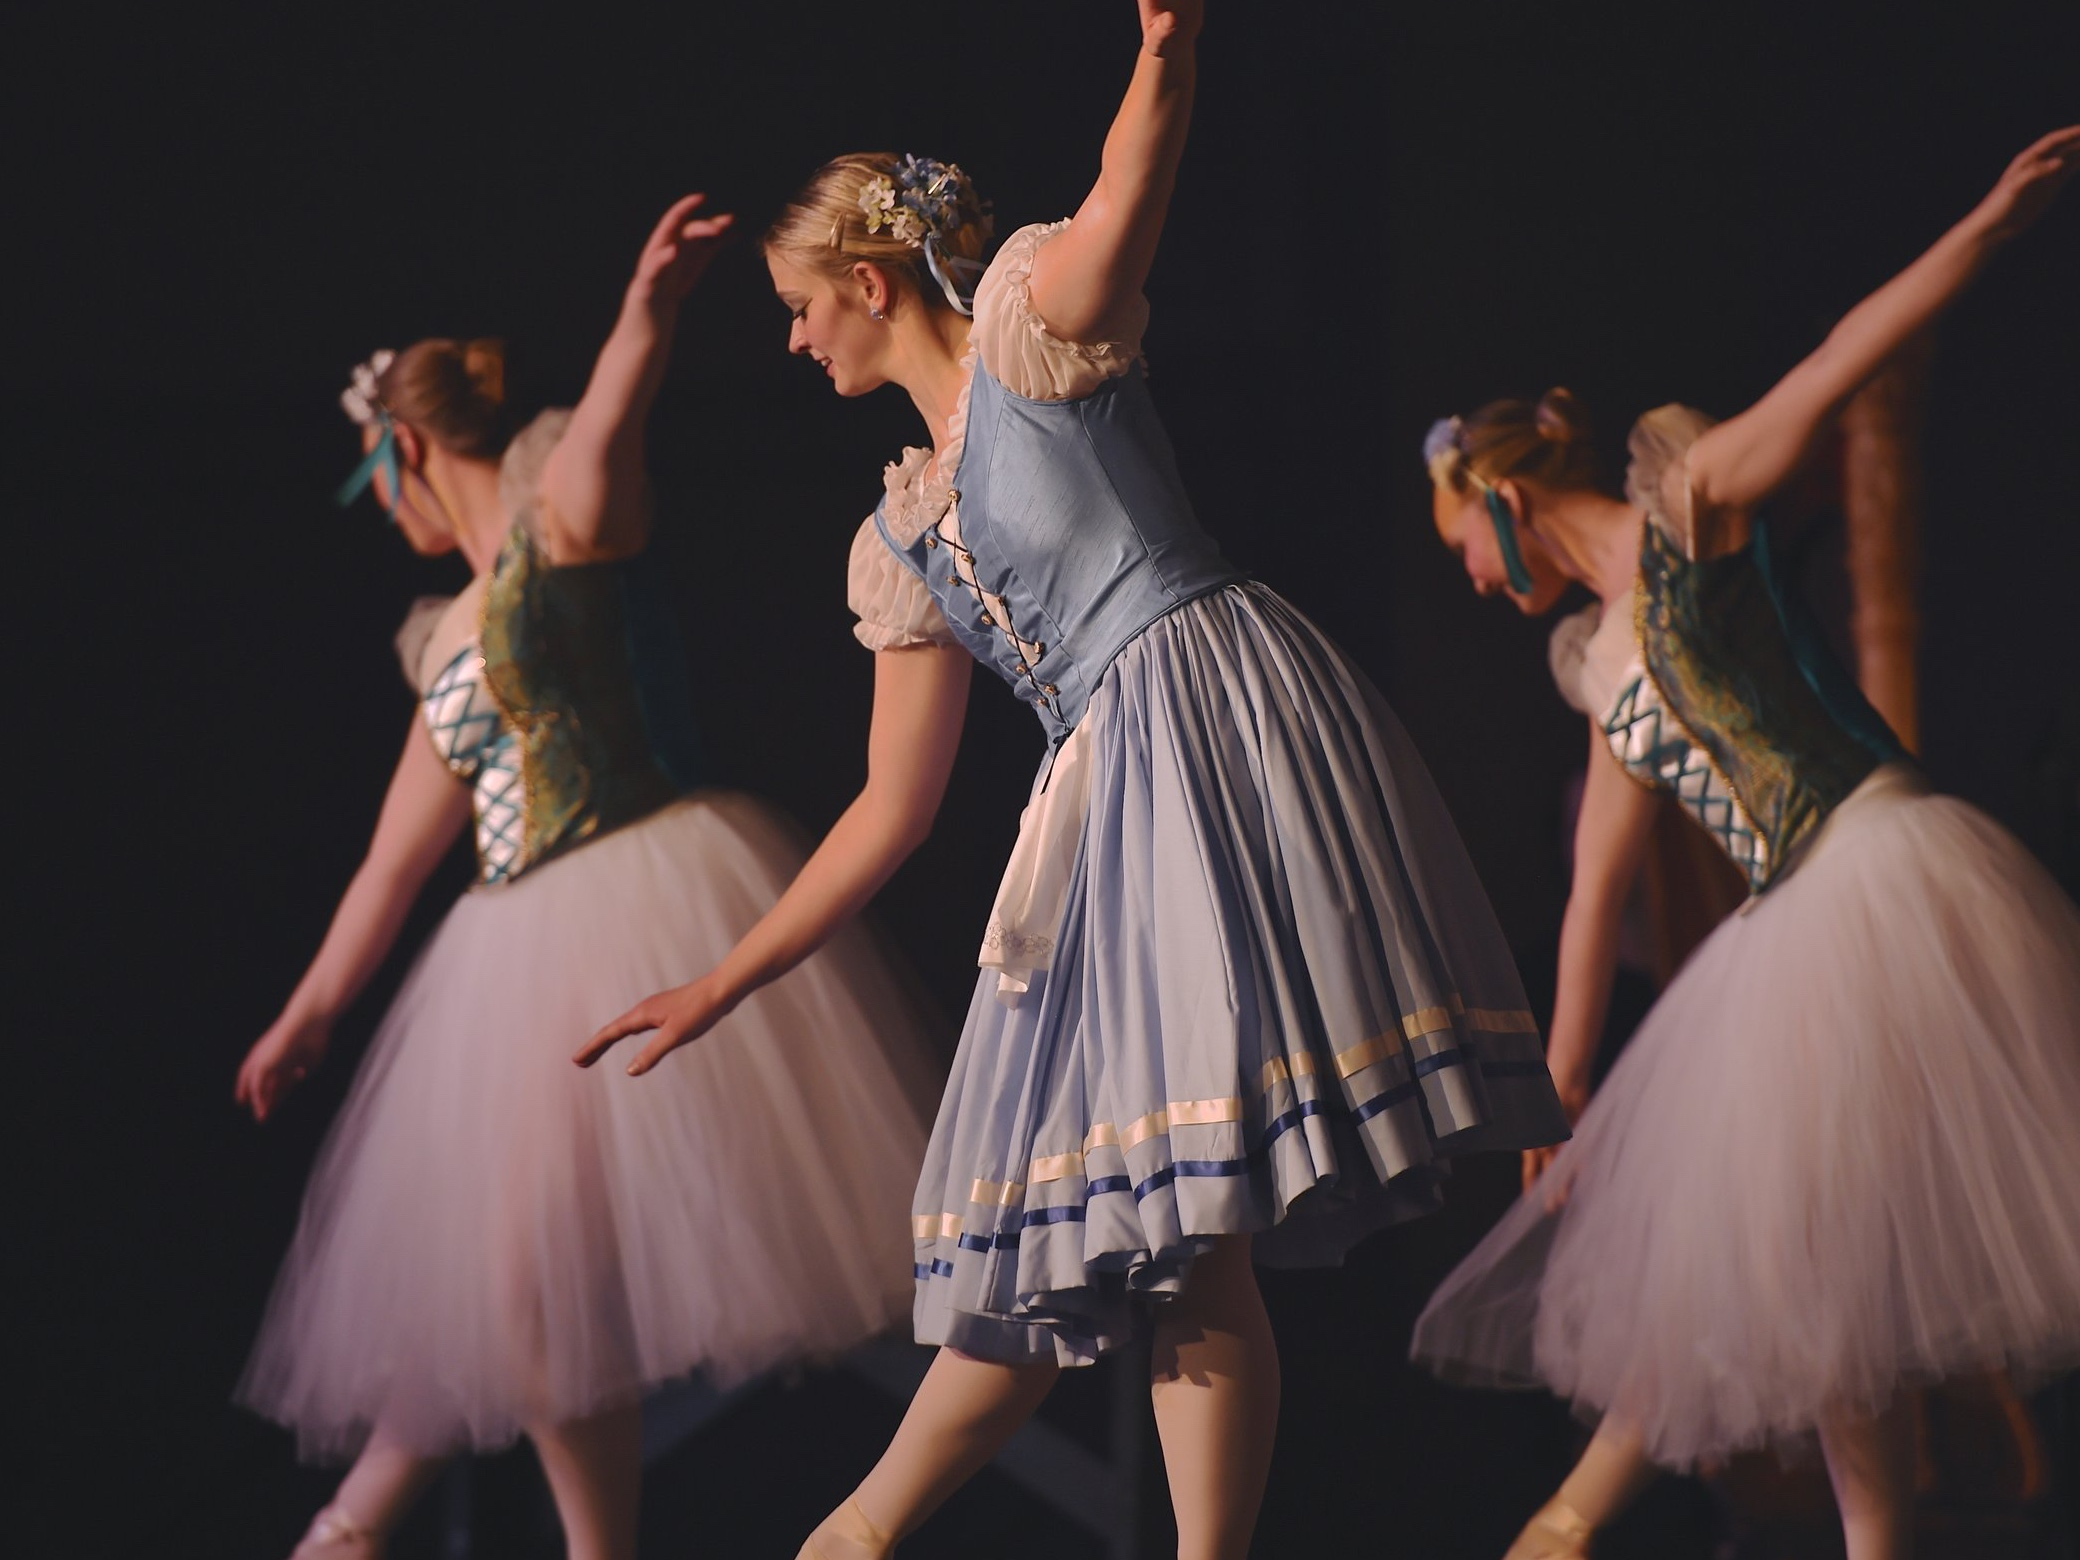 School of Music & Dance Presents 'Coppélia' - by Melissa Moon for The Eastern Echo